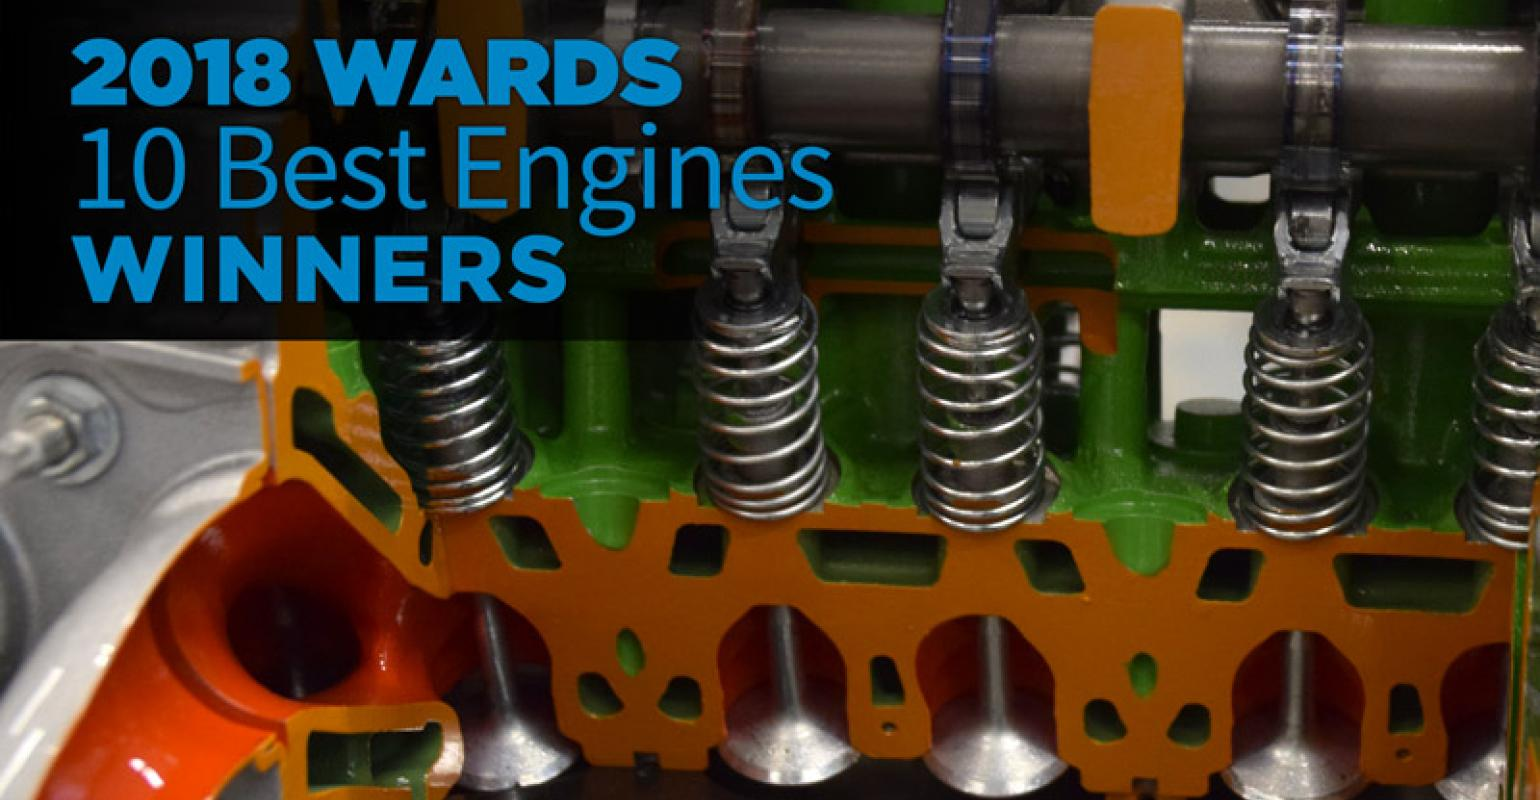 2018 Wards 10 Best Engines | Mainstream Brands Triumph